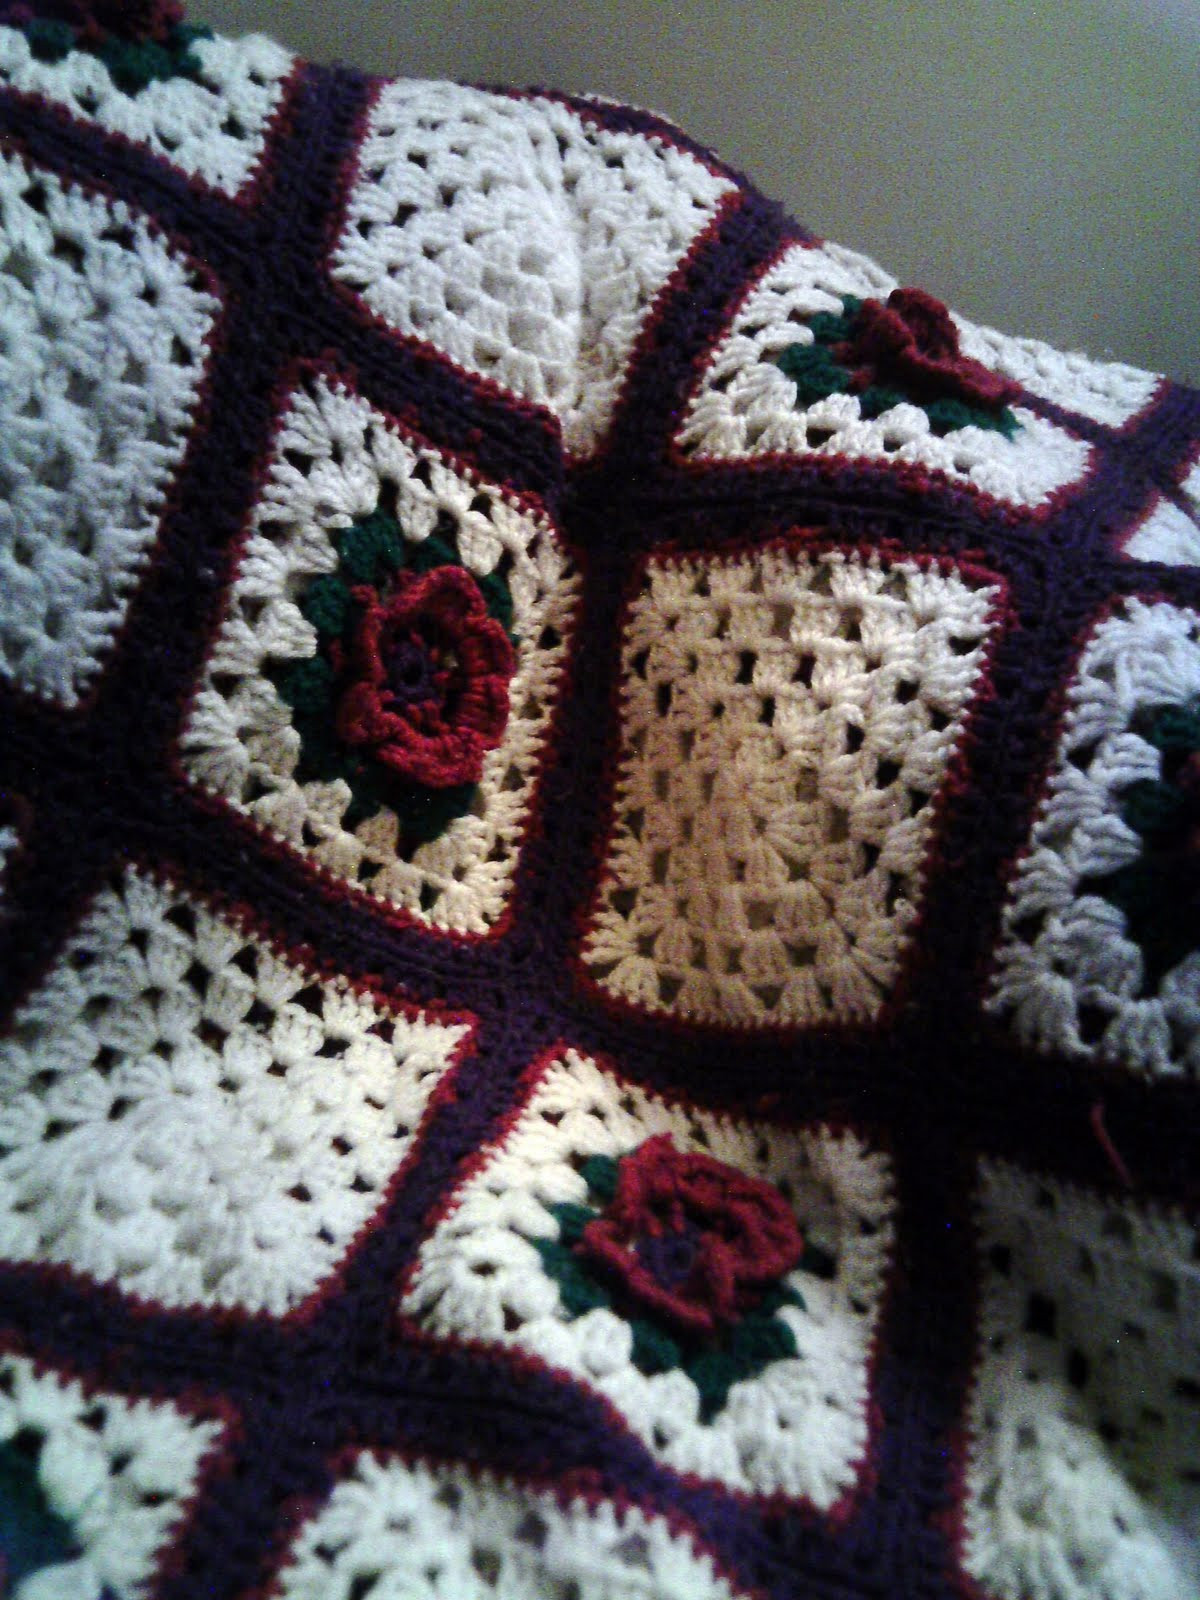 Crochet Granny Square Blanket Patterns Free Unique Free Crochet Patterns for Christmas Of Amazing 42 Ideas Crochet Granny Square Blanket Patterns Free